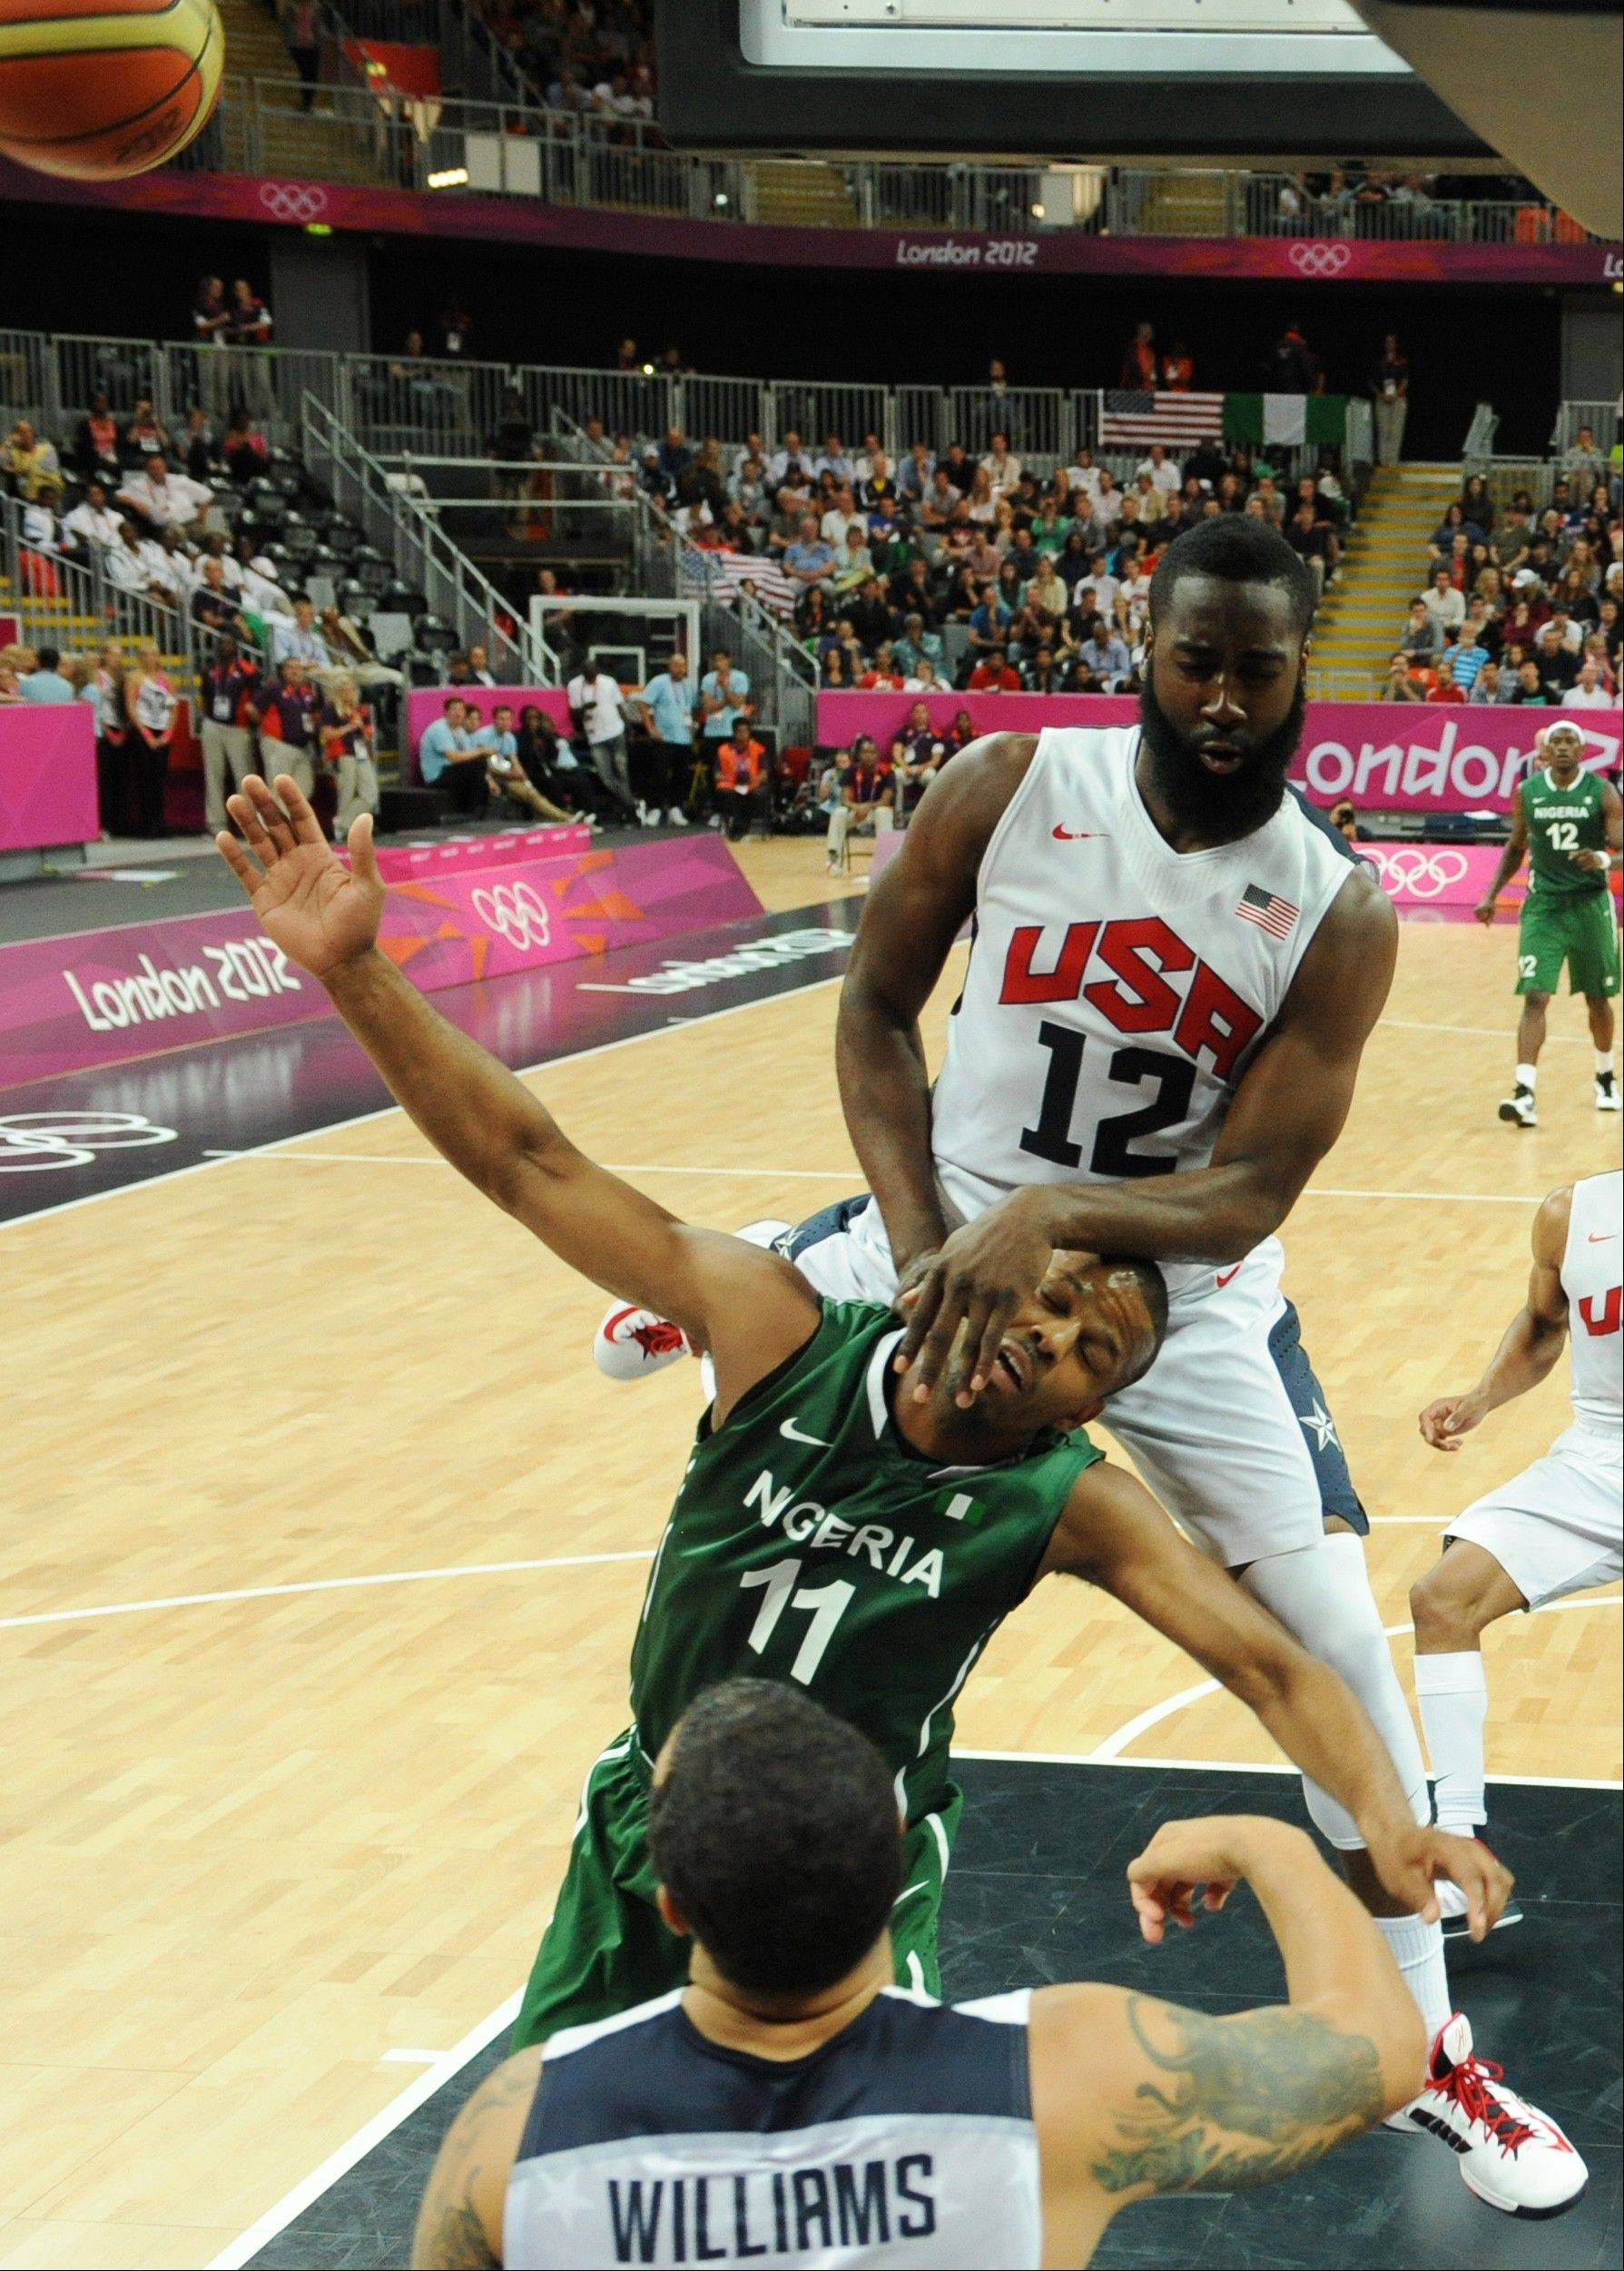 United States' guard James Harden, right, vies for the ball with Nigerian guard Richard Oruche during their men's preliminary round basketball match at the 2012 Summer Olympics.